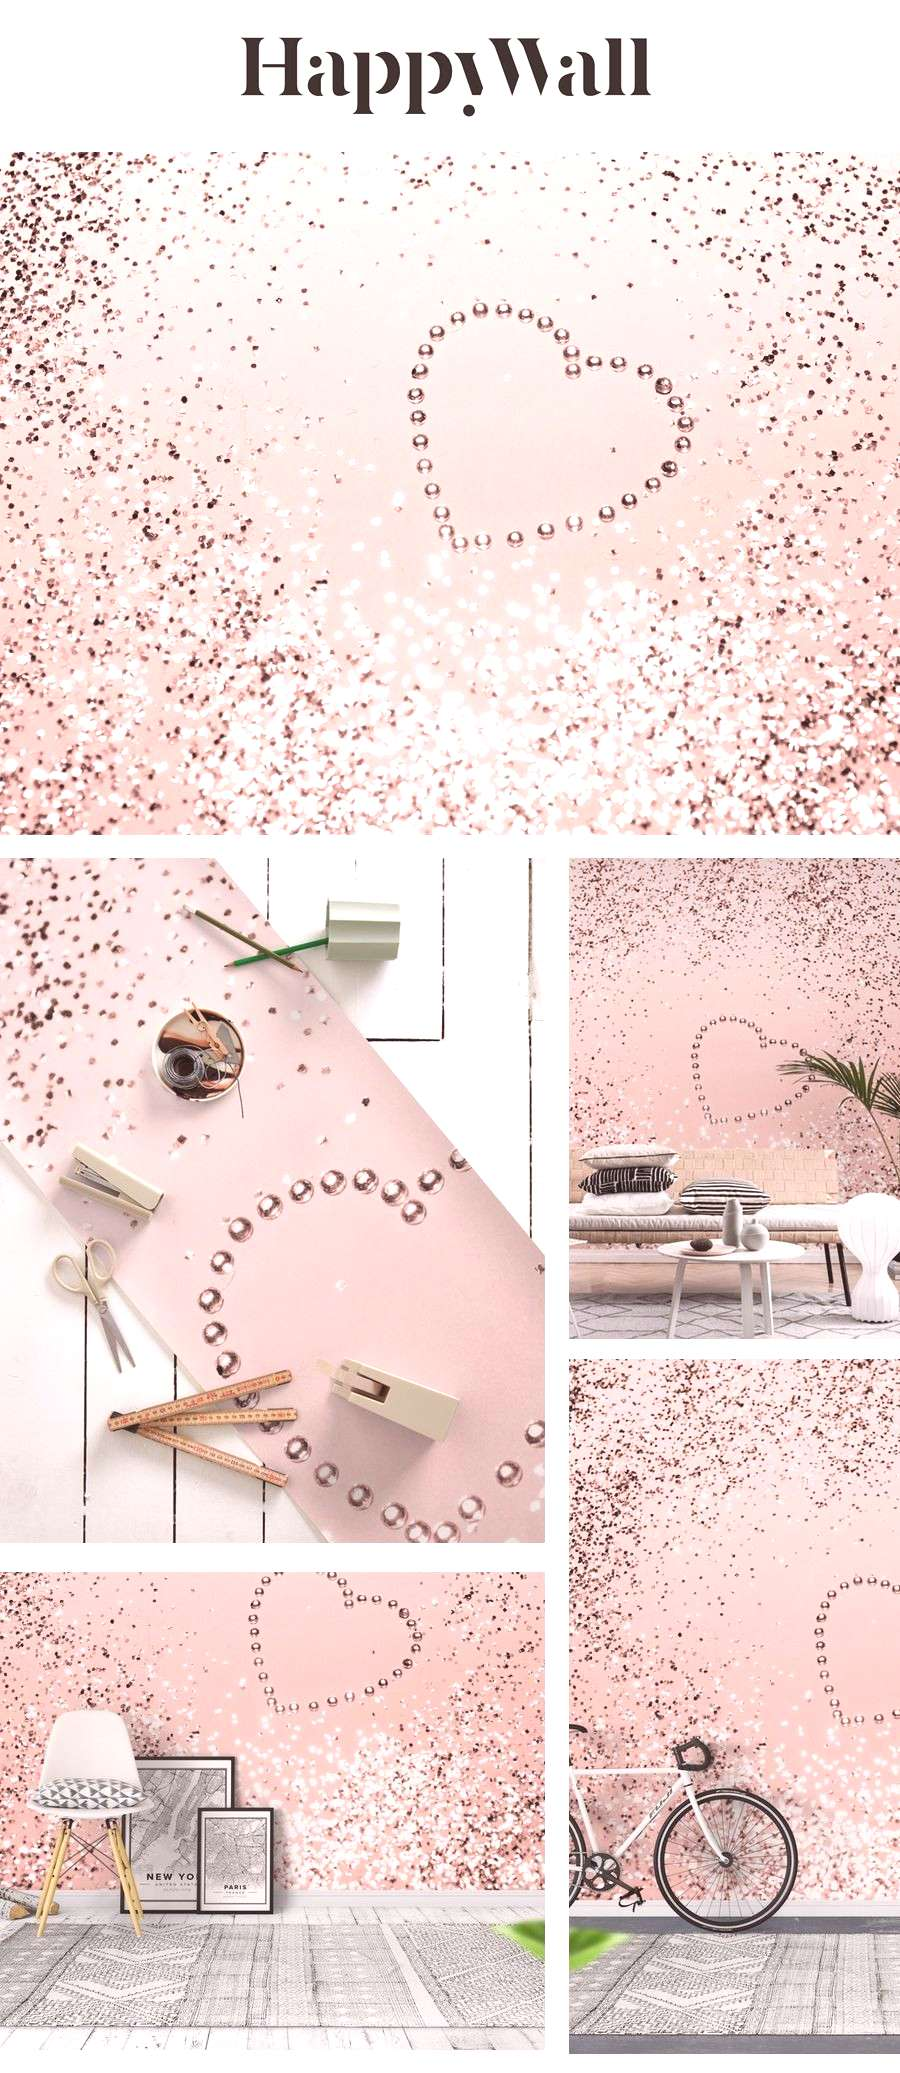 Sparkling ROSE GOLD Heart 5 wall mural from Happywall